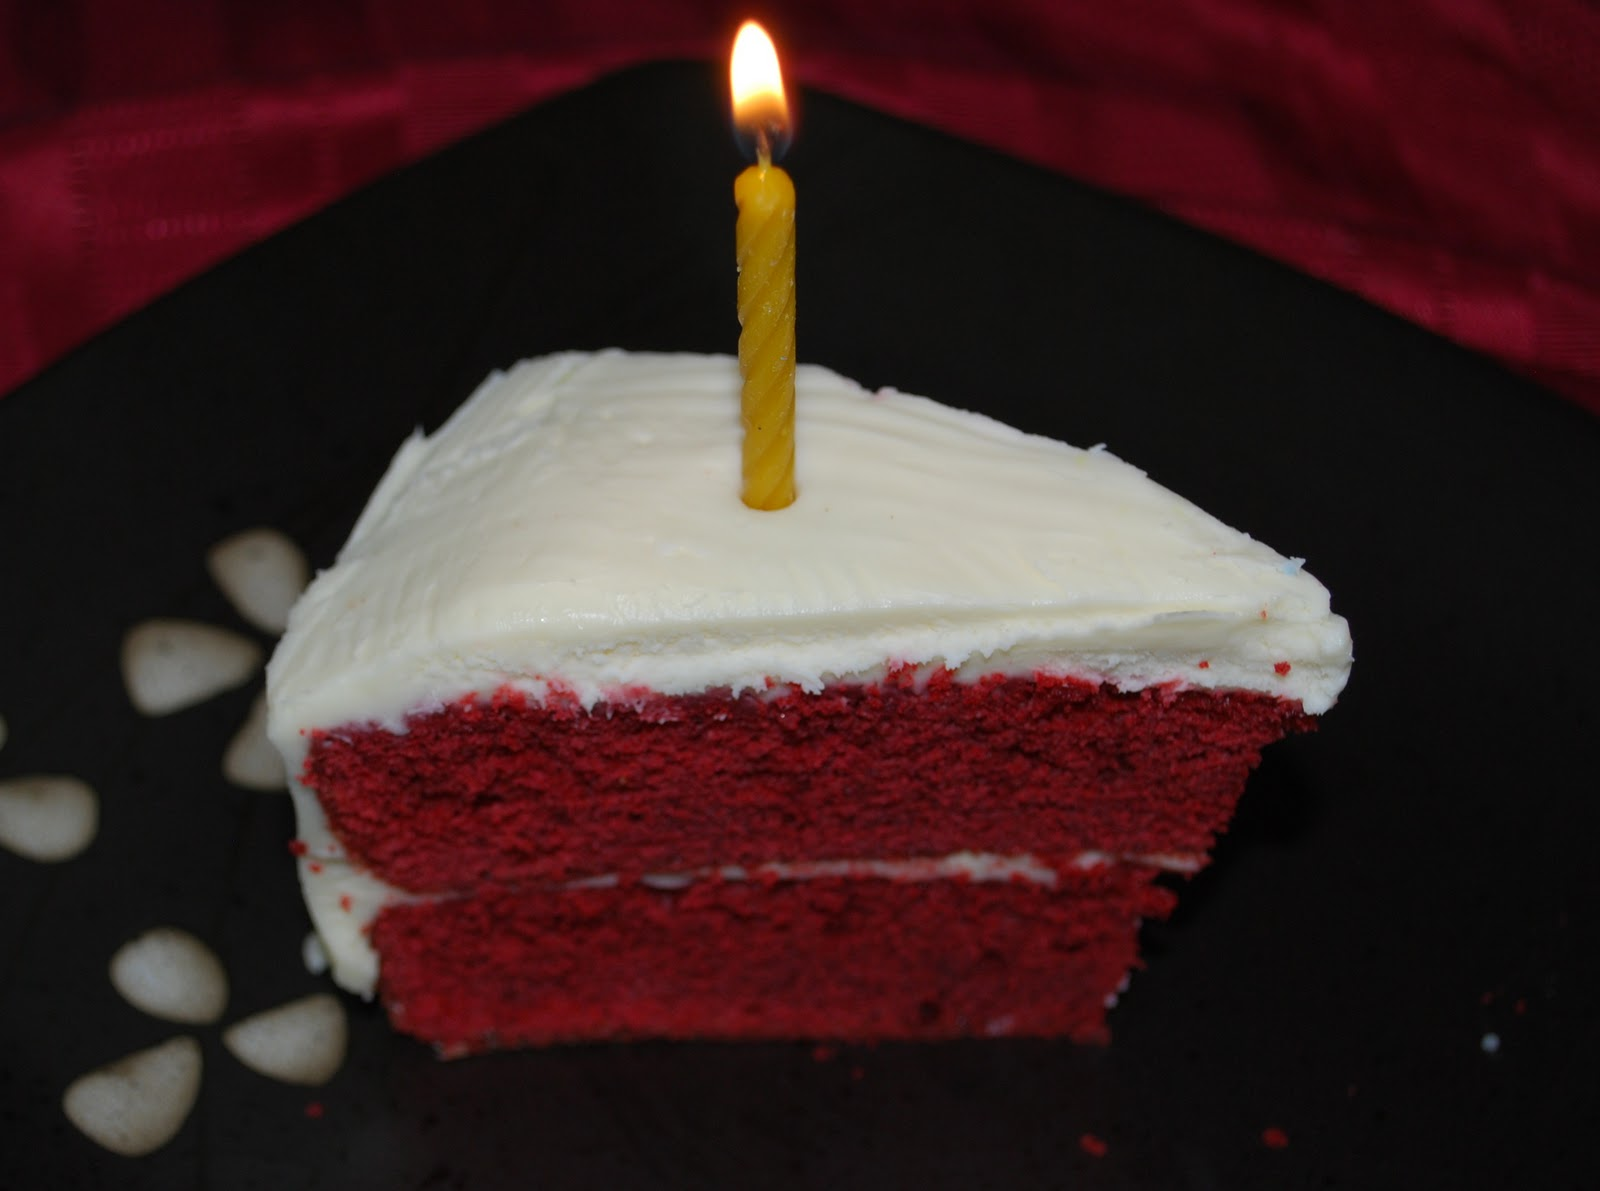 Red Velvet Cake With Cream Cheese Frosting Carries Experimental